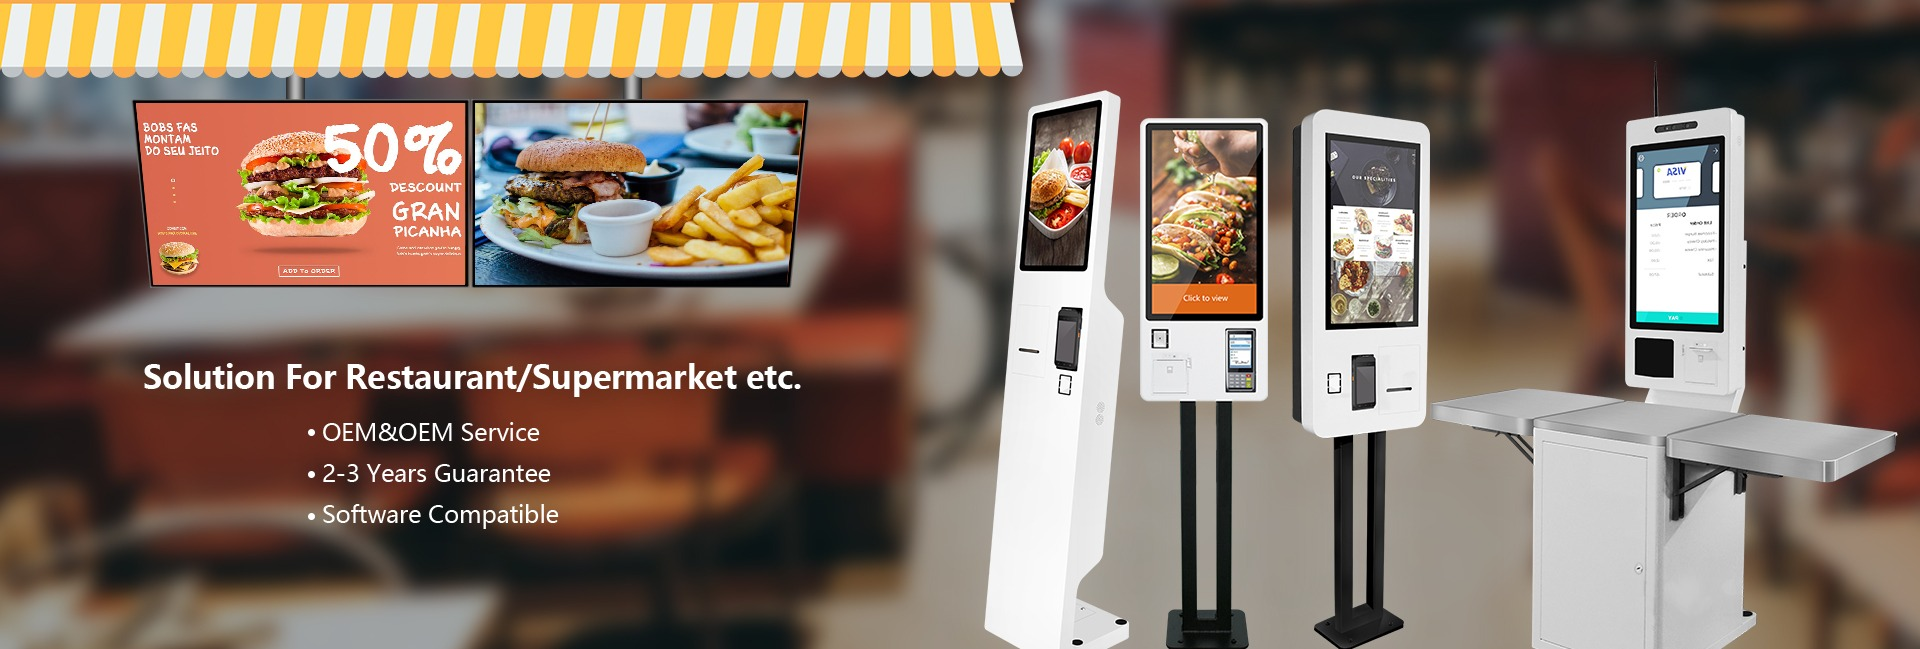 pub epos software Digital Screens and self order kiosk